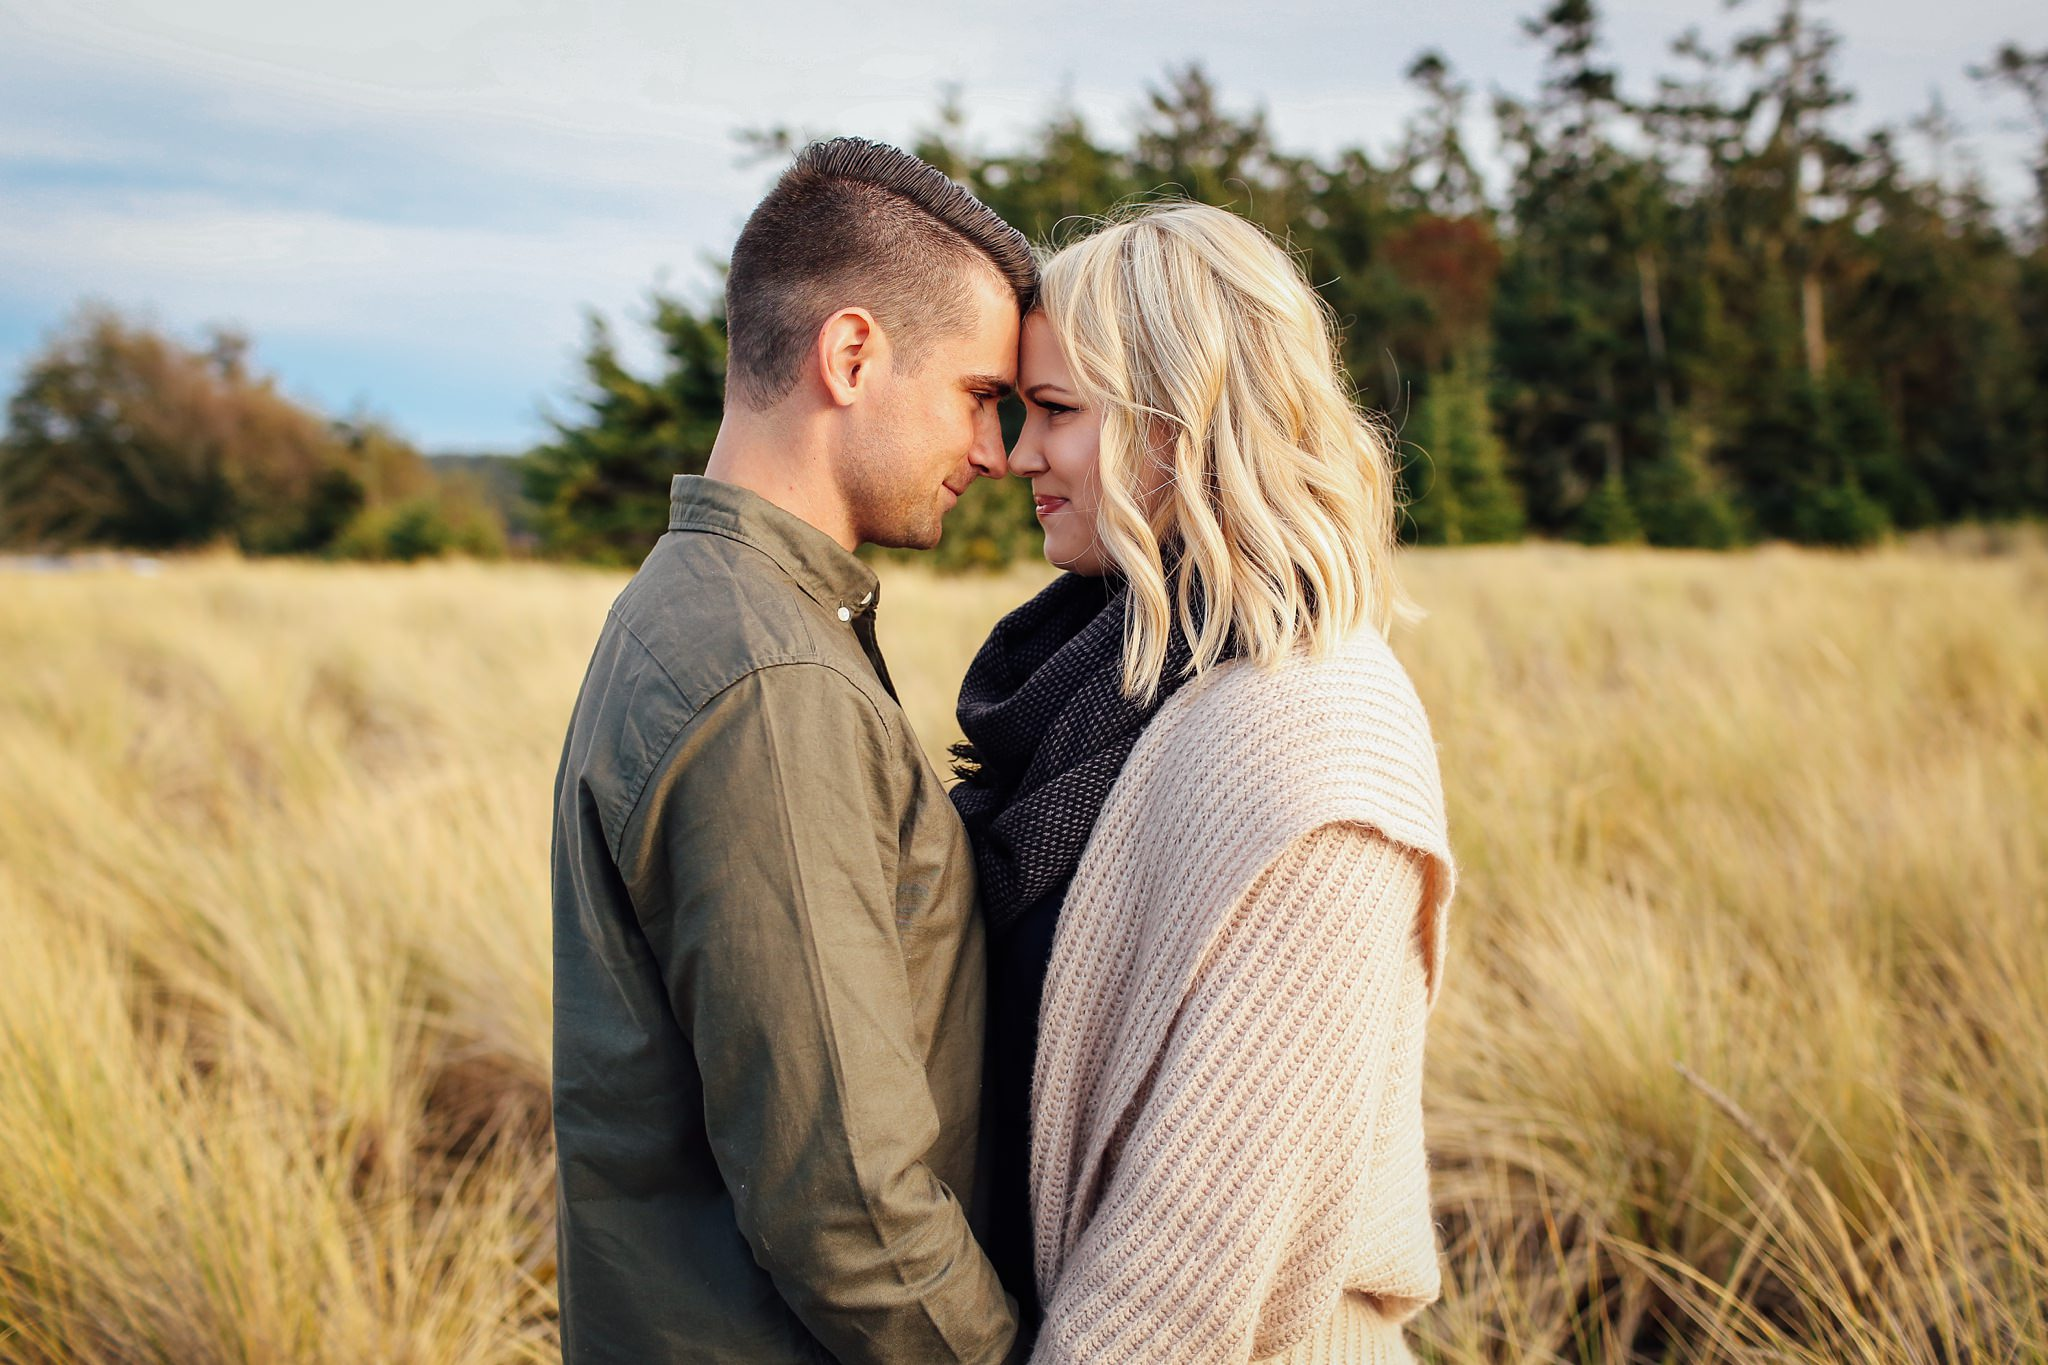 Whidbey-Island-Family-Photographer-Kara-Chappell-Photography_1359.jpg